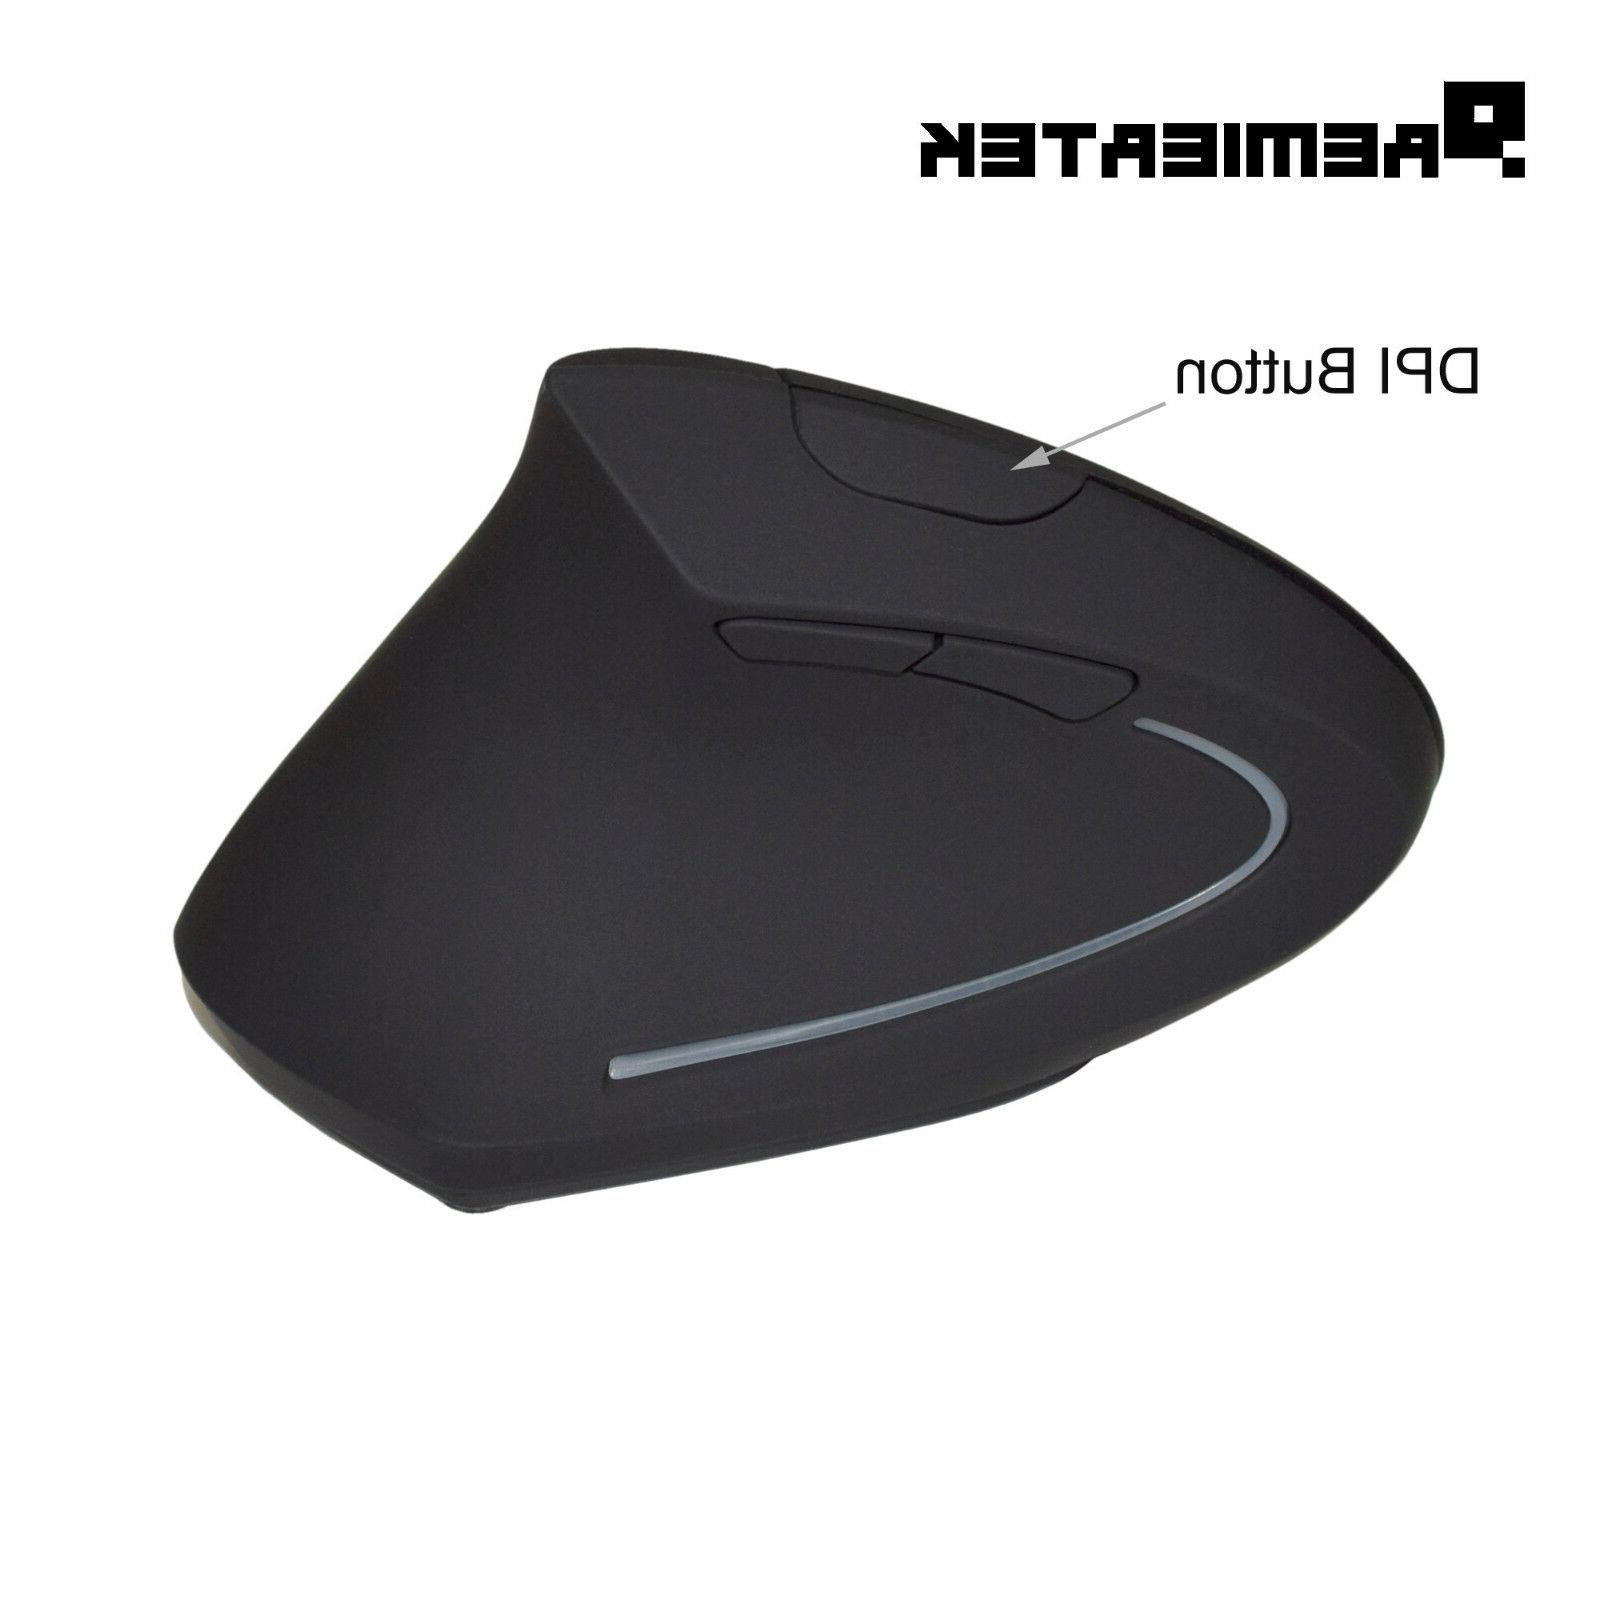 6-Button Ergonomic Optical Mouse, Rechargeable Battery